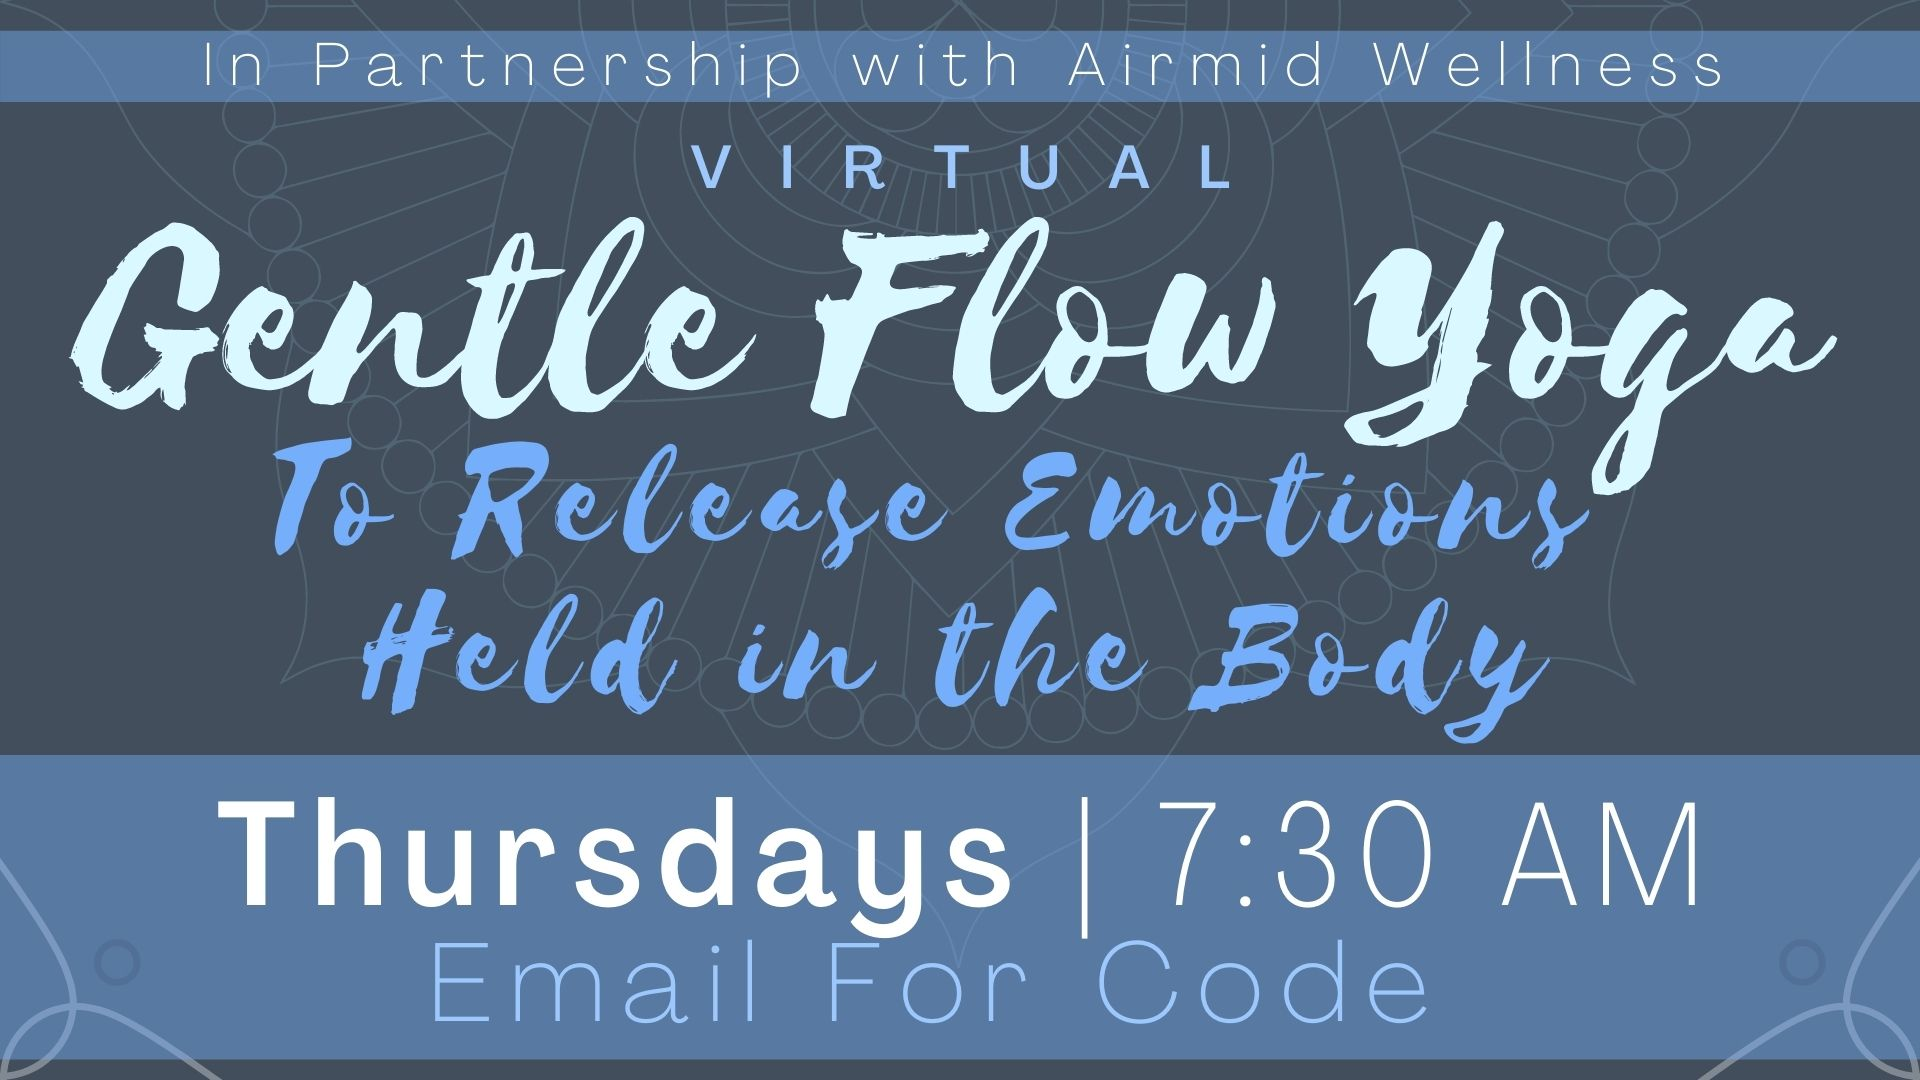 Gentle Flow Yoga to Release Emotions Held in the Body